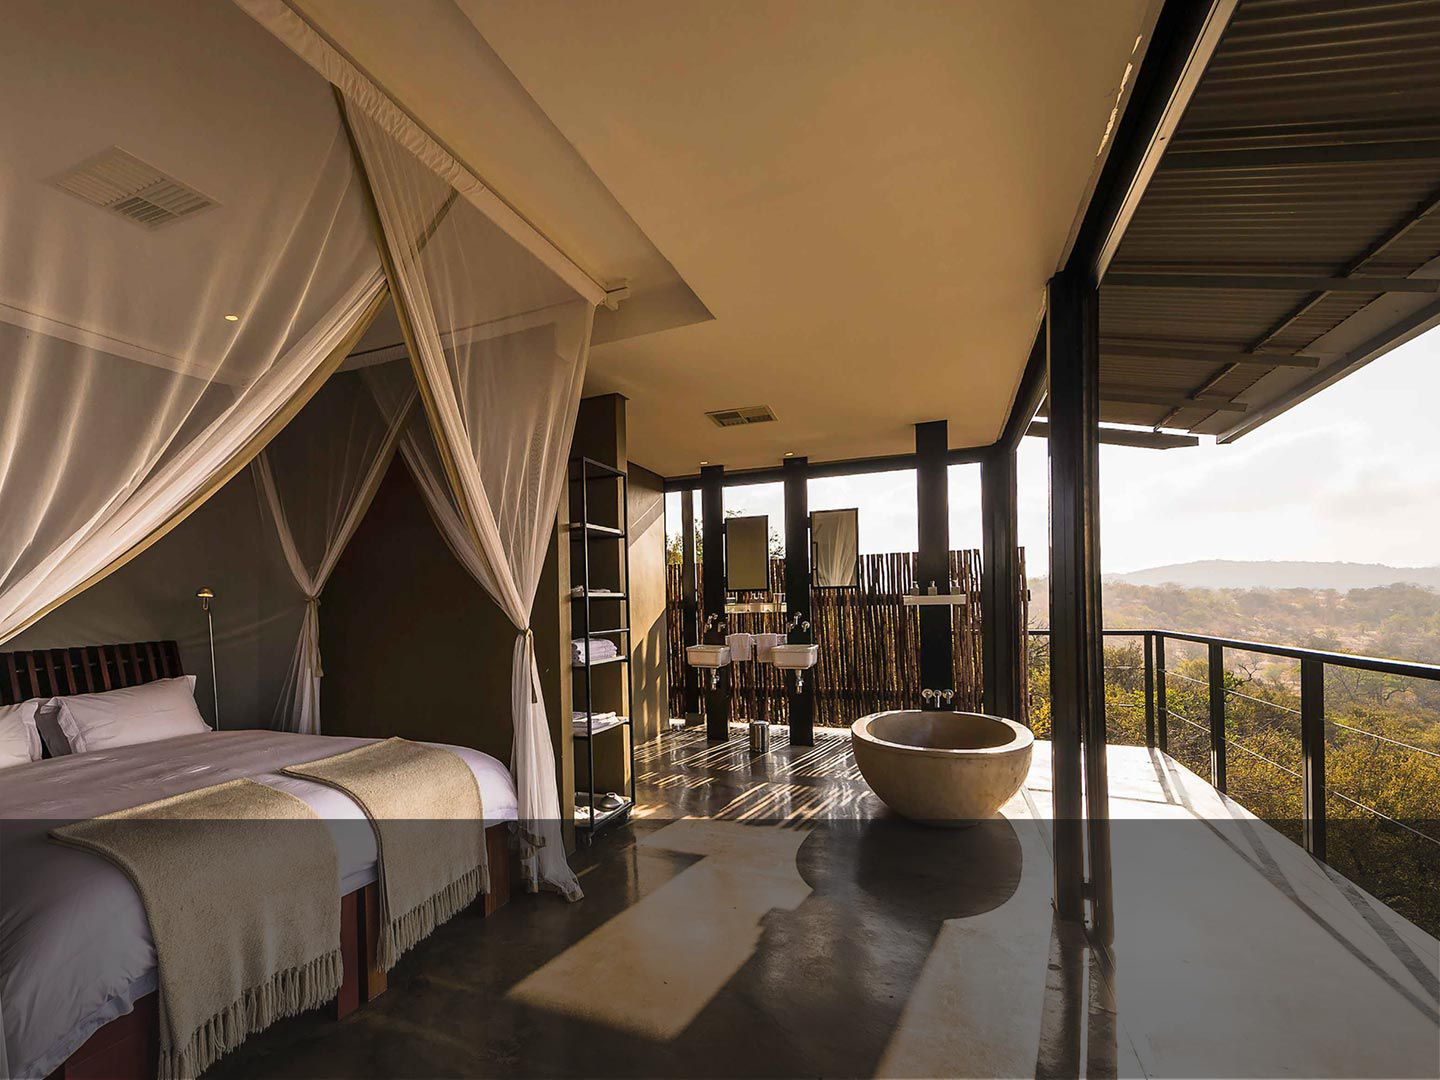 THE OUTPOST, KRUGER NATIONAL PARK, SOUTH AFRICA